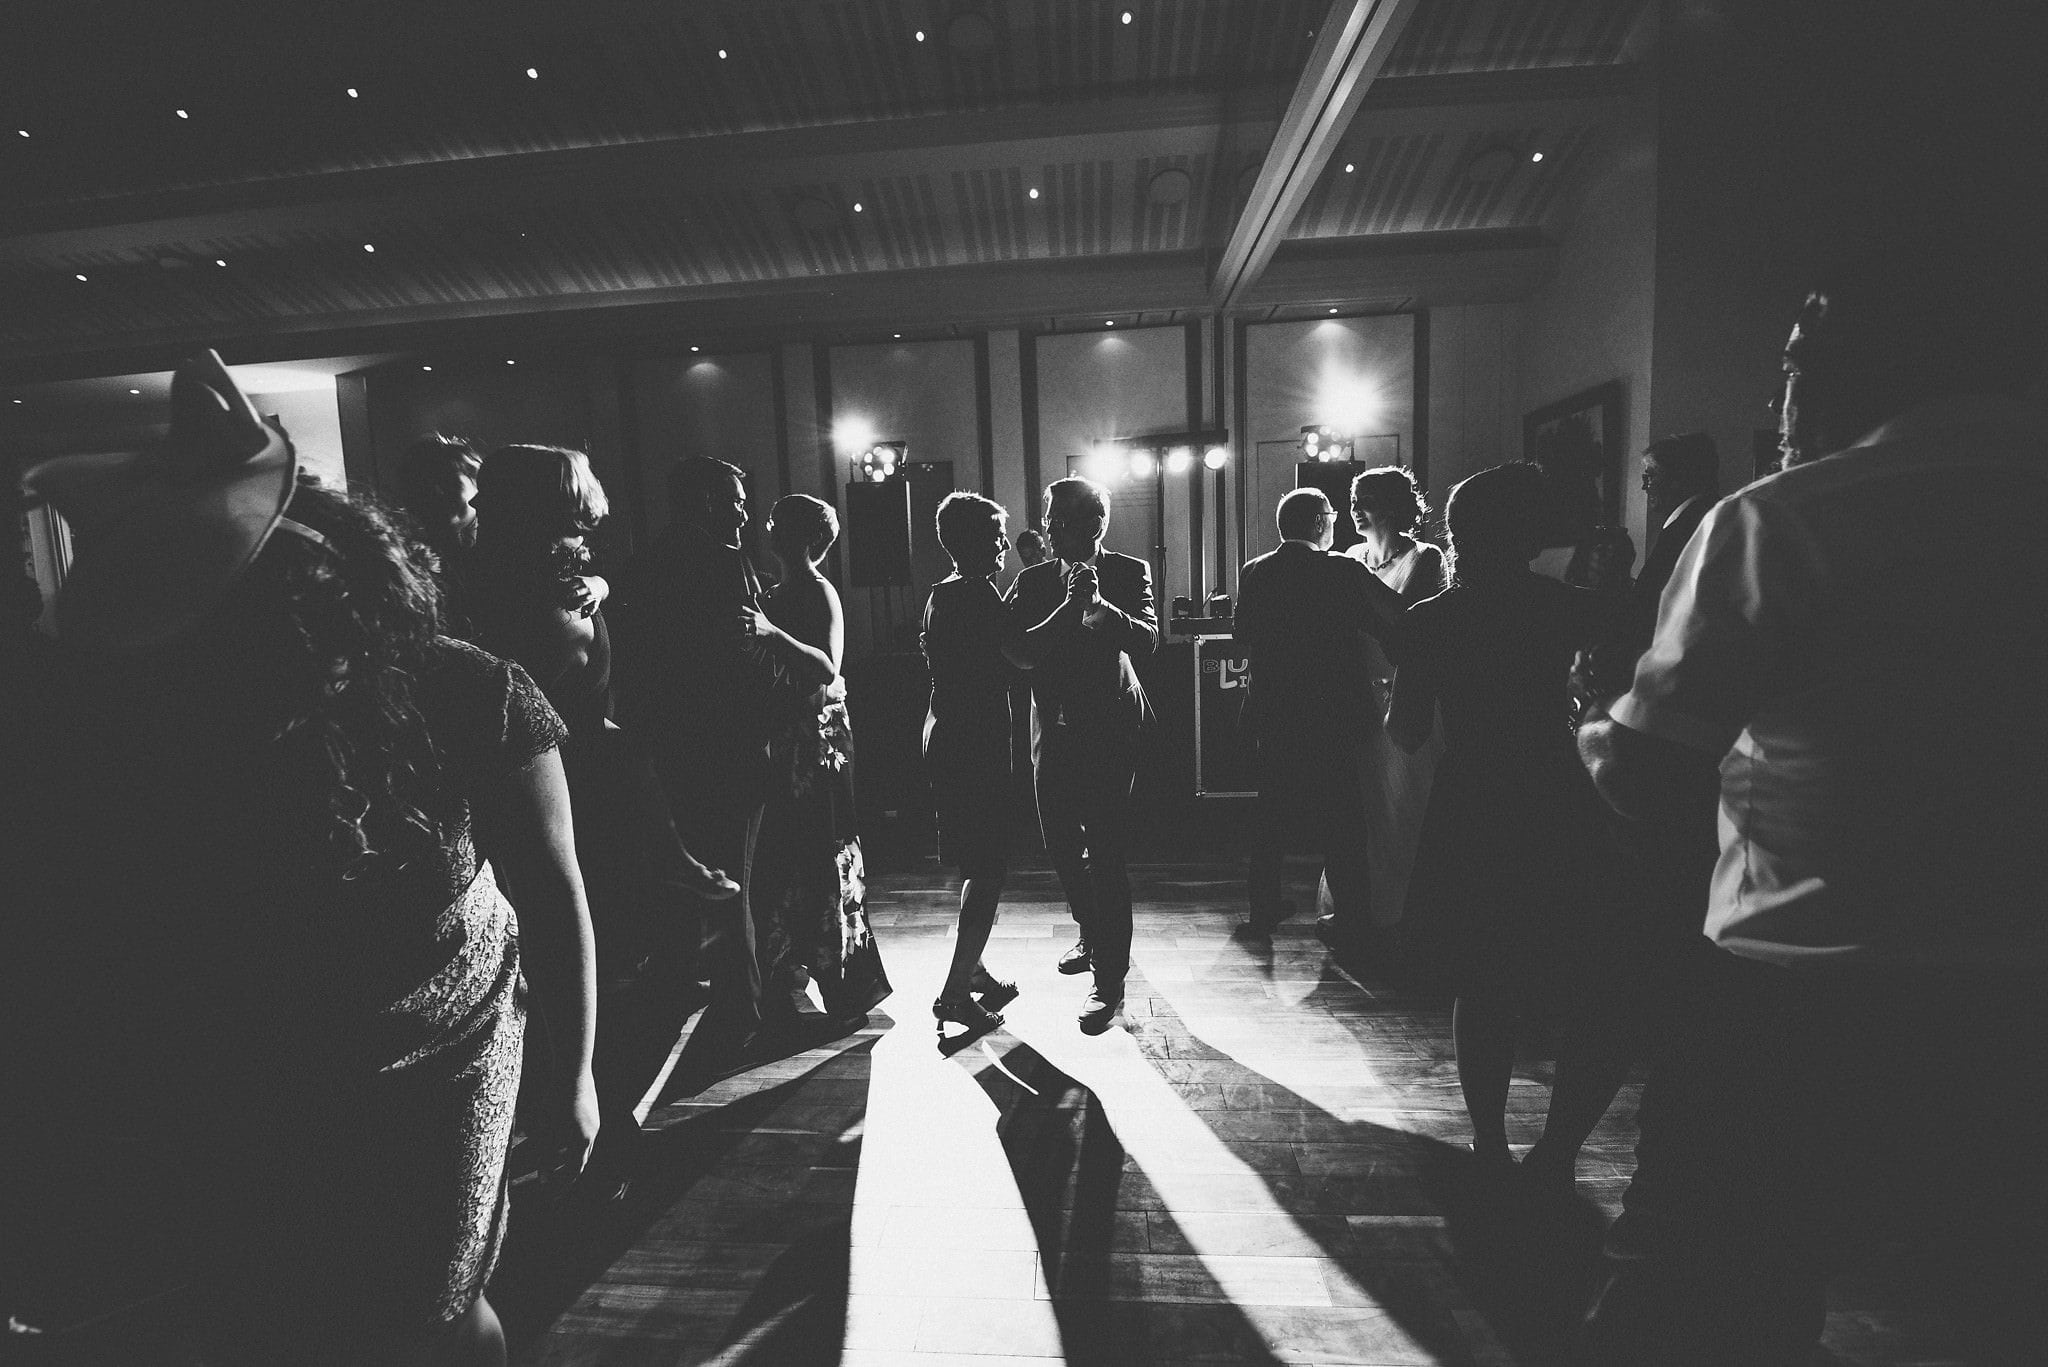 Groom dancing with his mother surrounded by wedding guests in a black and white silhouette